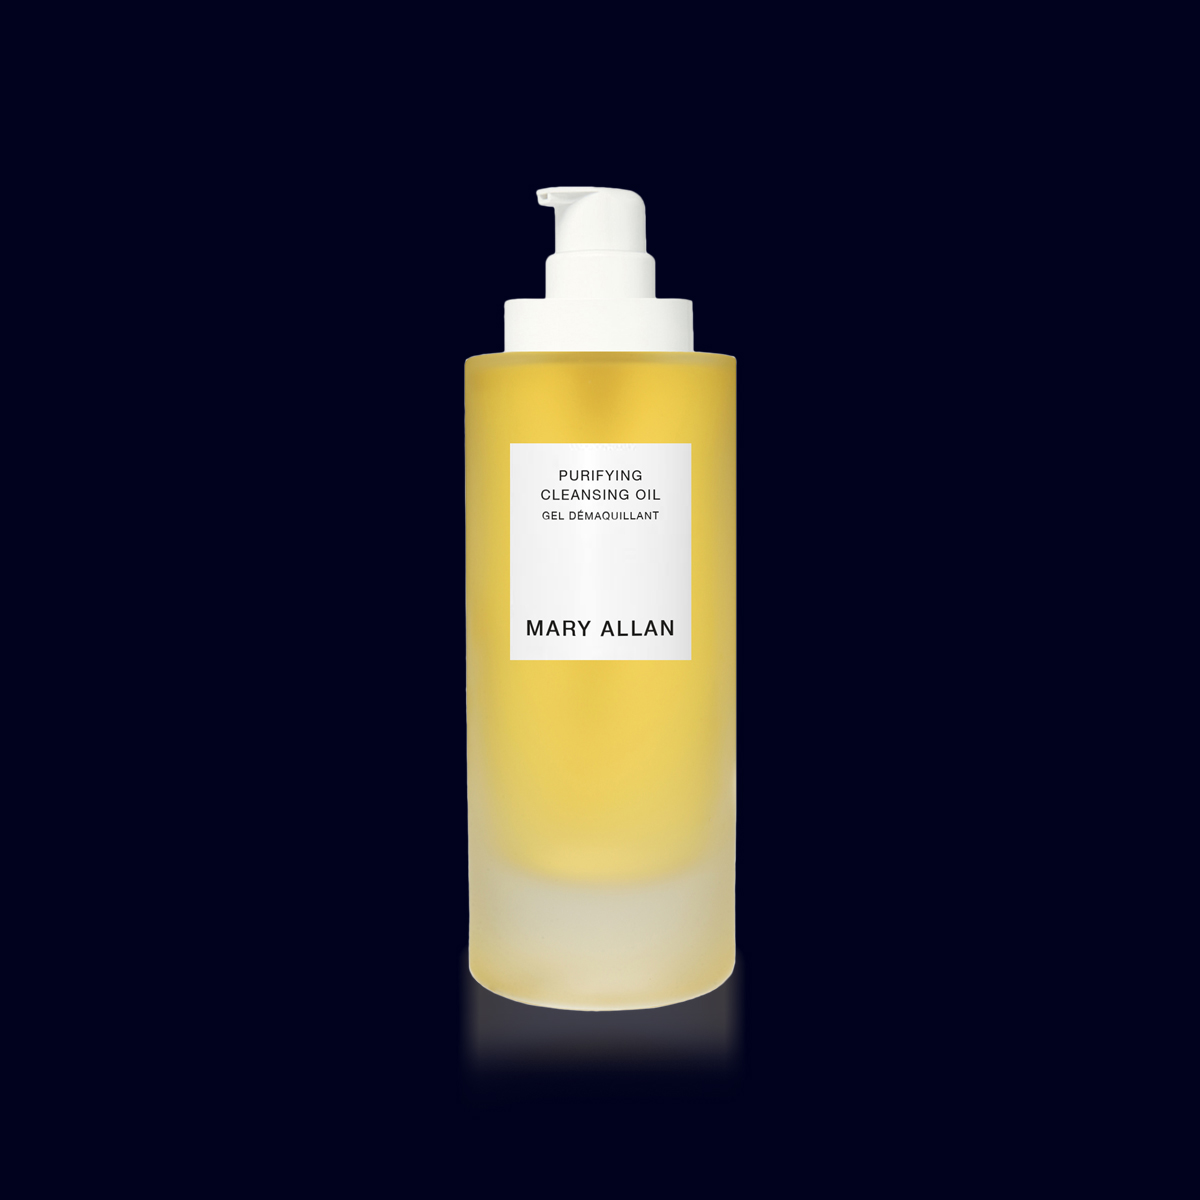 WITHOUT SHADOW-PURIFYING CLEANSING OIL.jpg